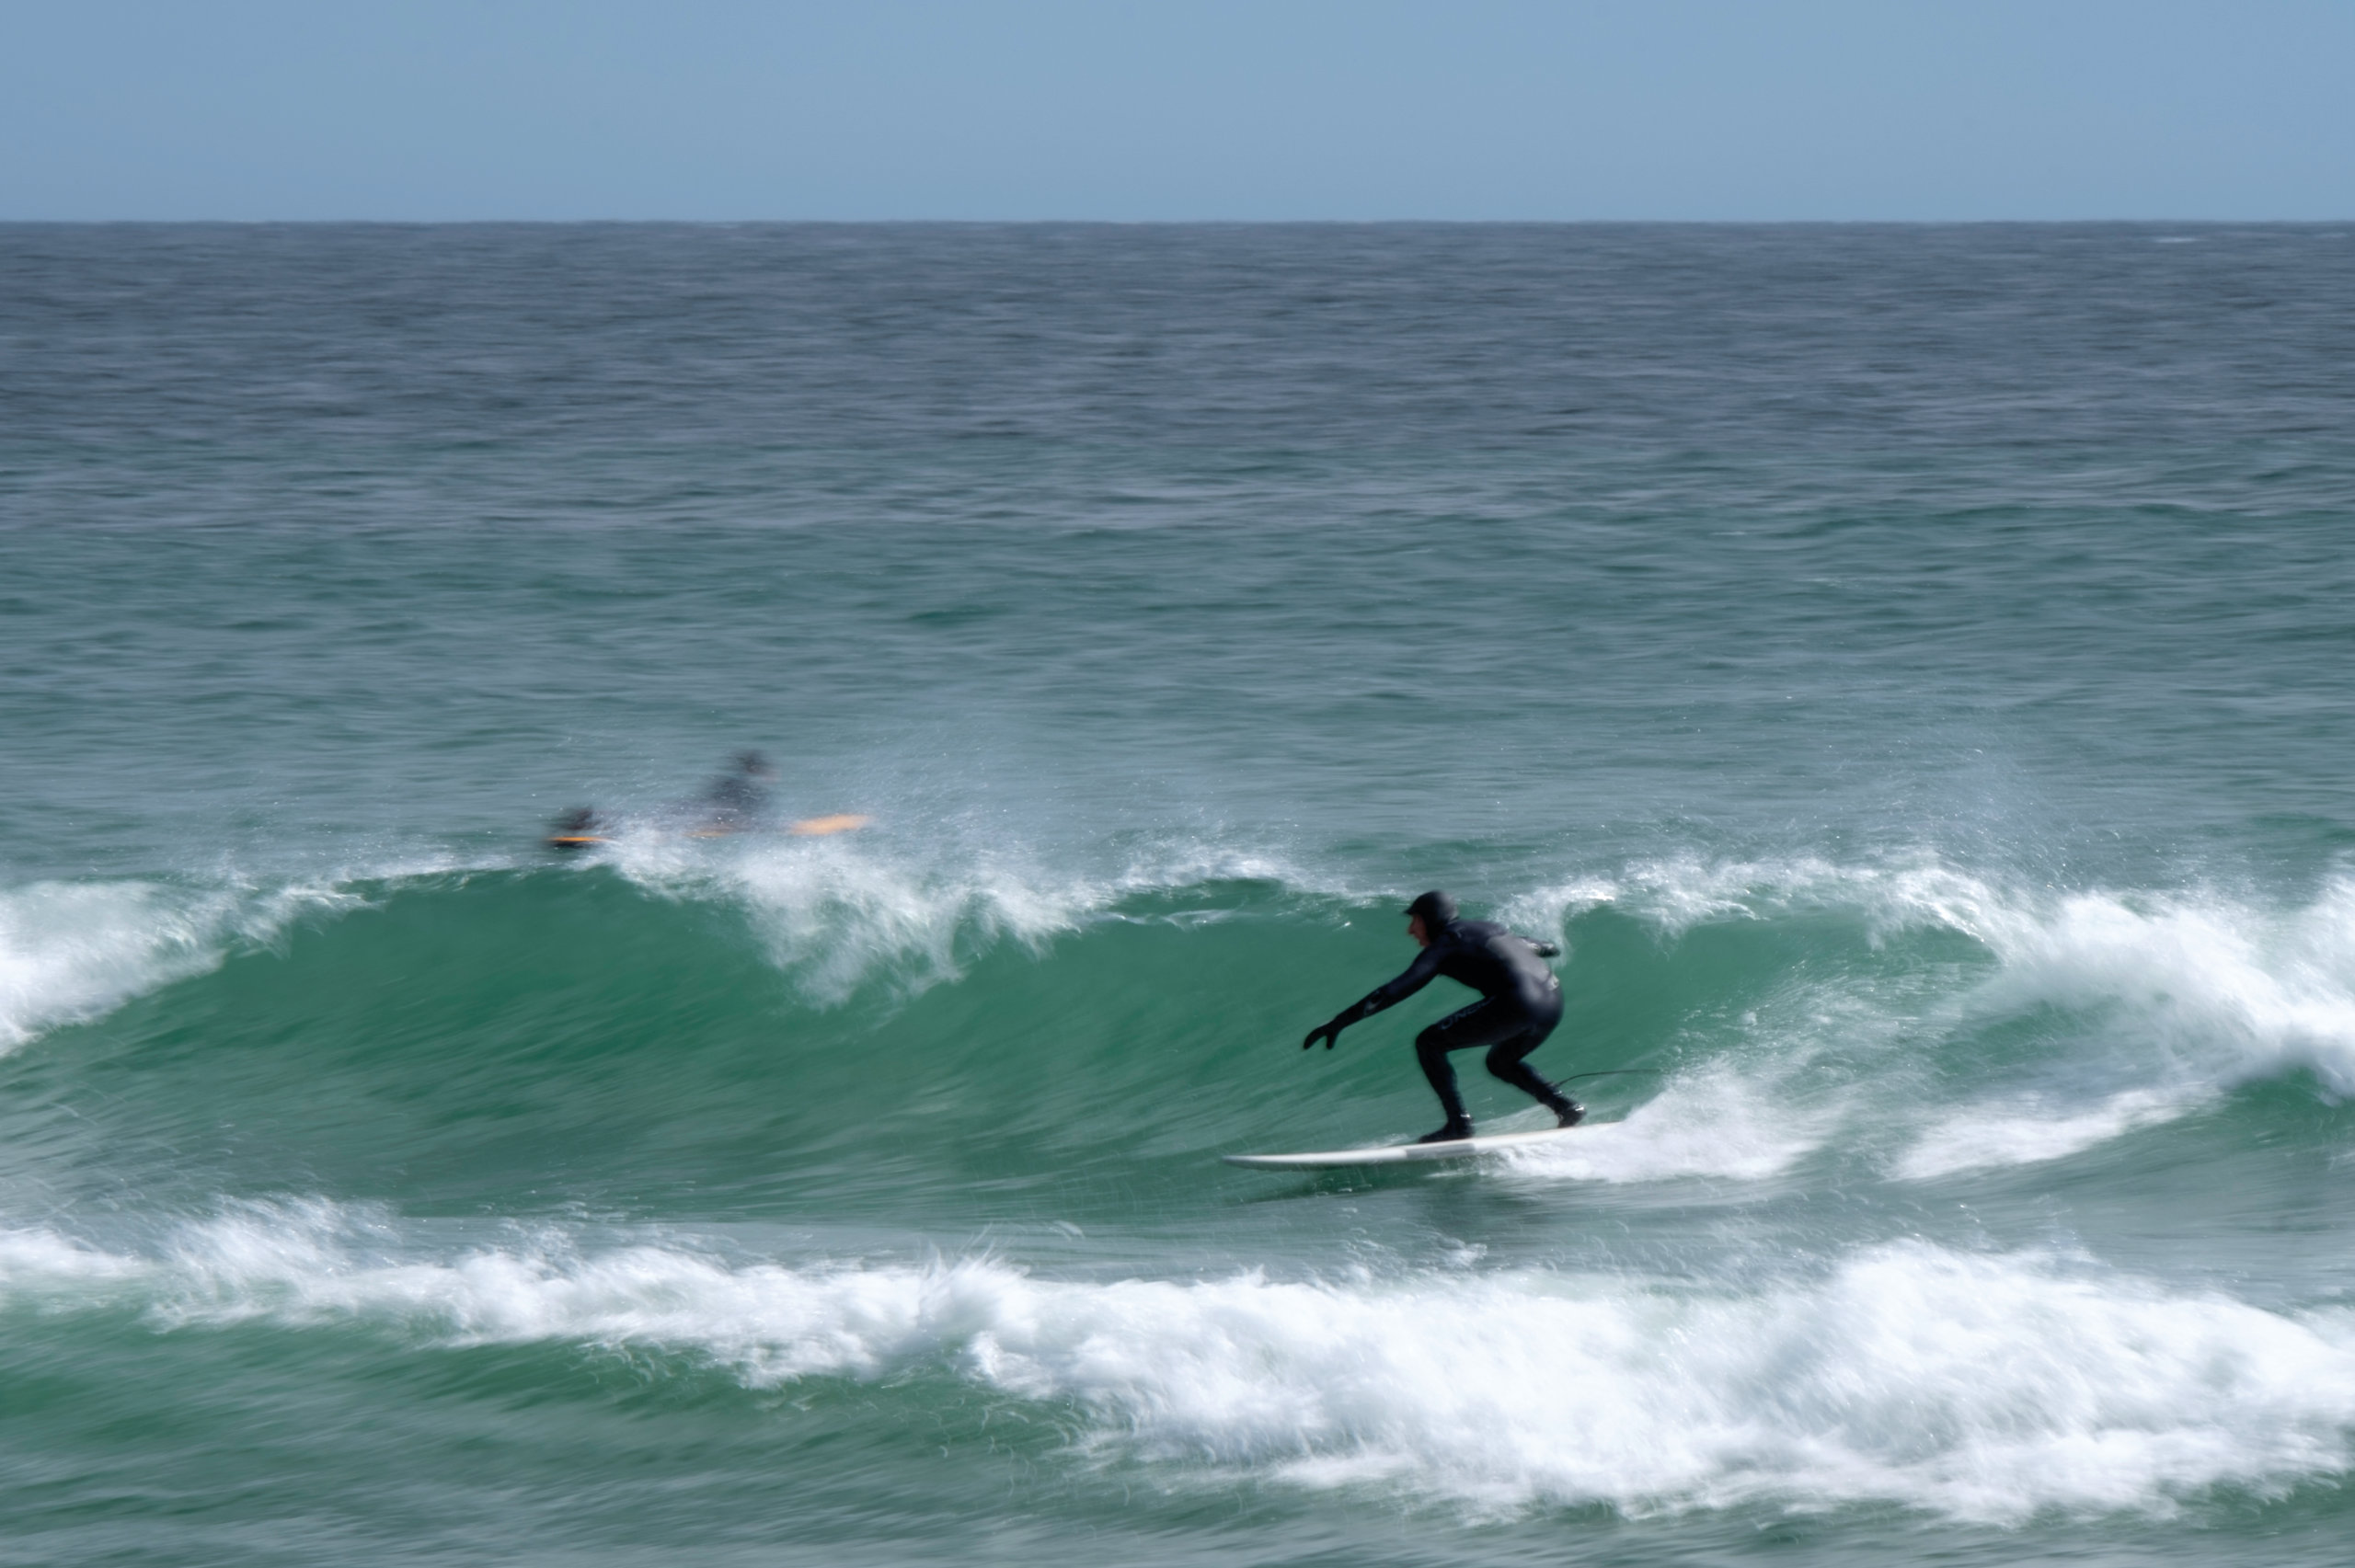 Peter Panagiotis (a.k.a. Peter Pan) catches a perfect ride at one of his favorite spots in Narragansett, Rhode Island.